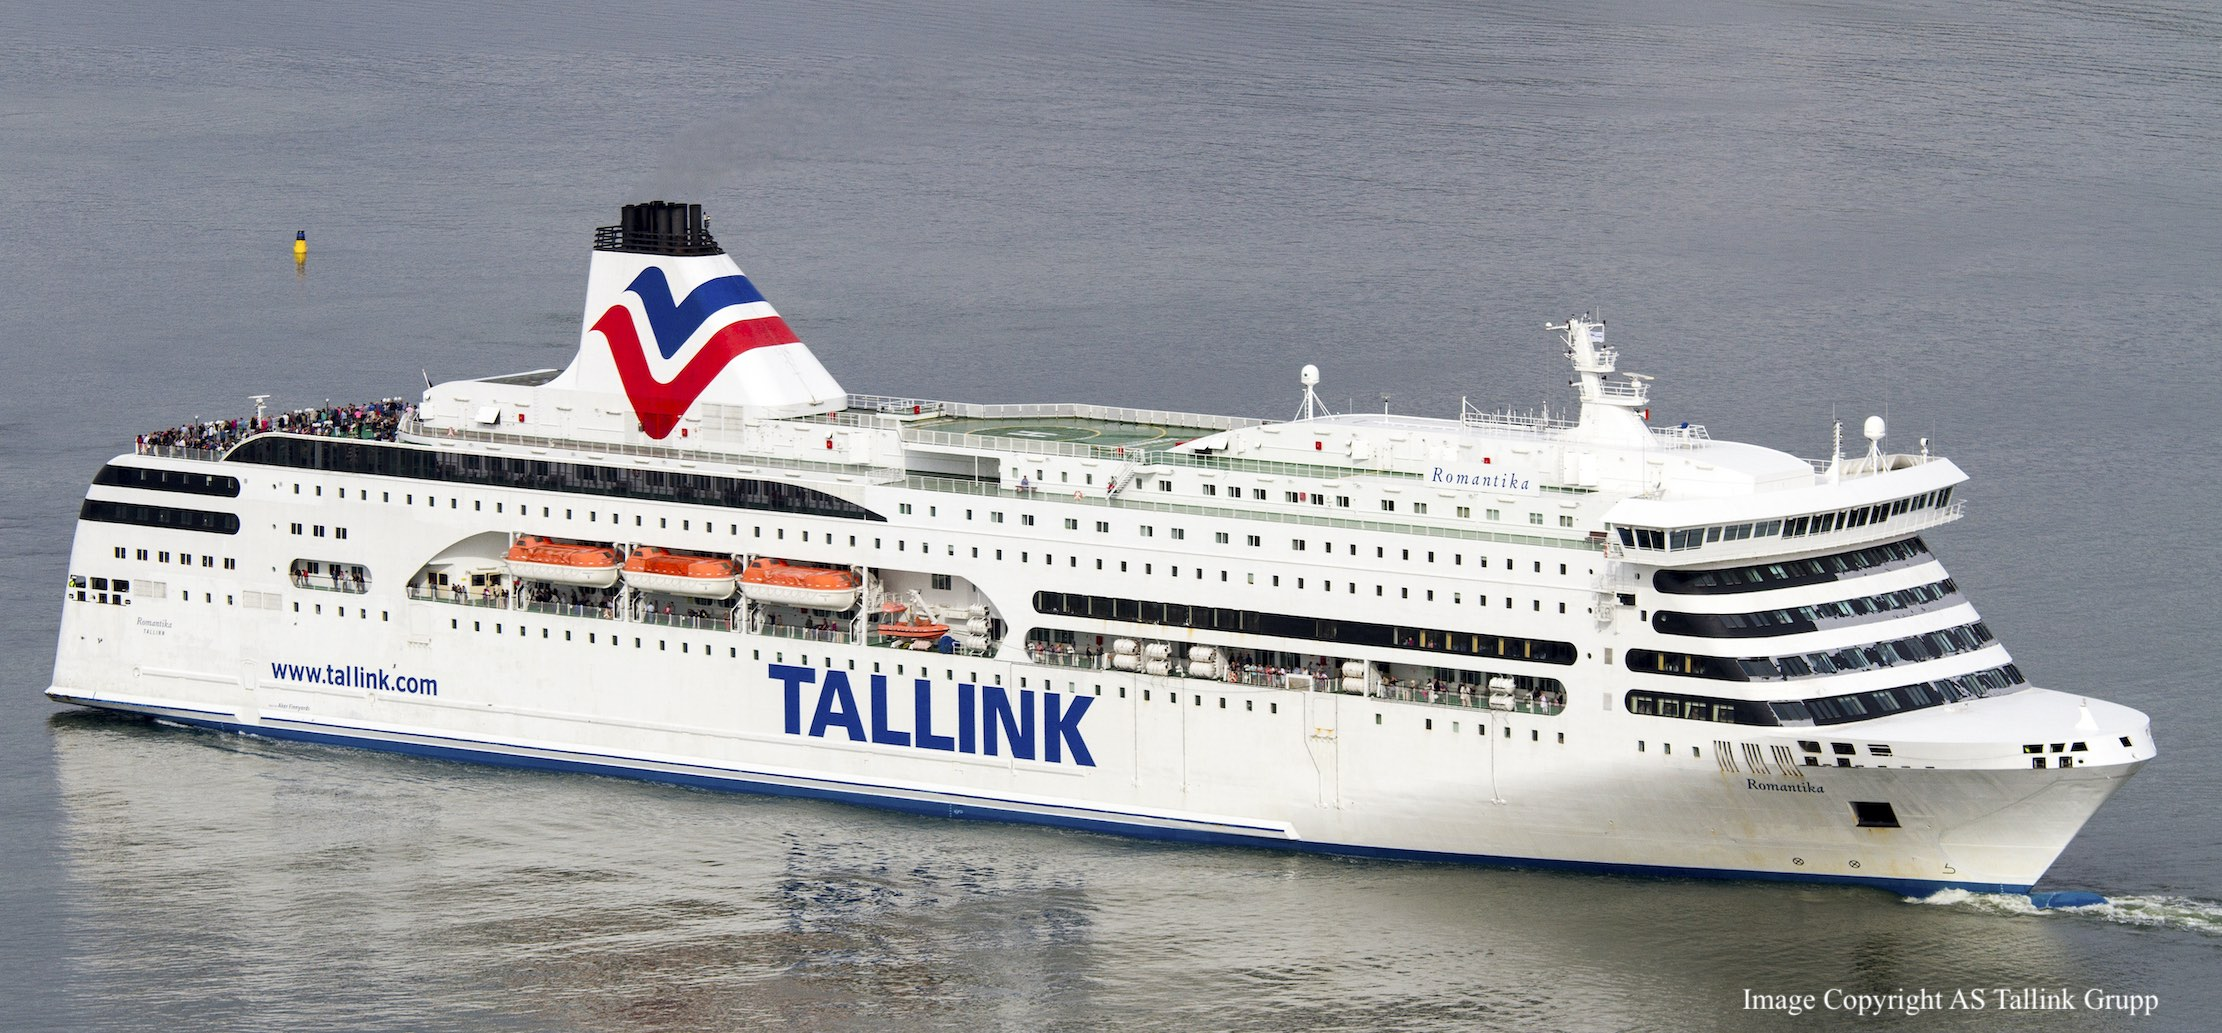 Photo of Tallink Silja - Romantika ship